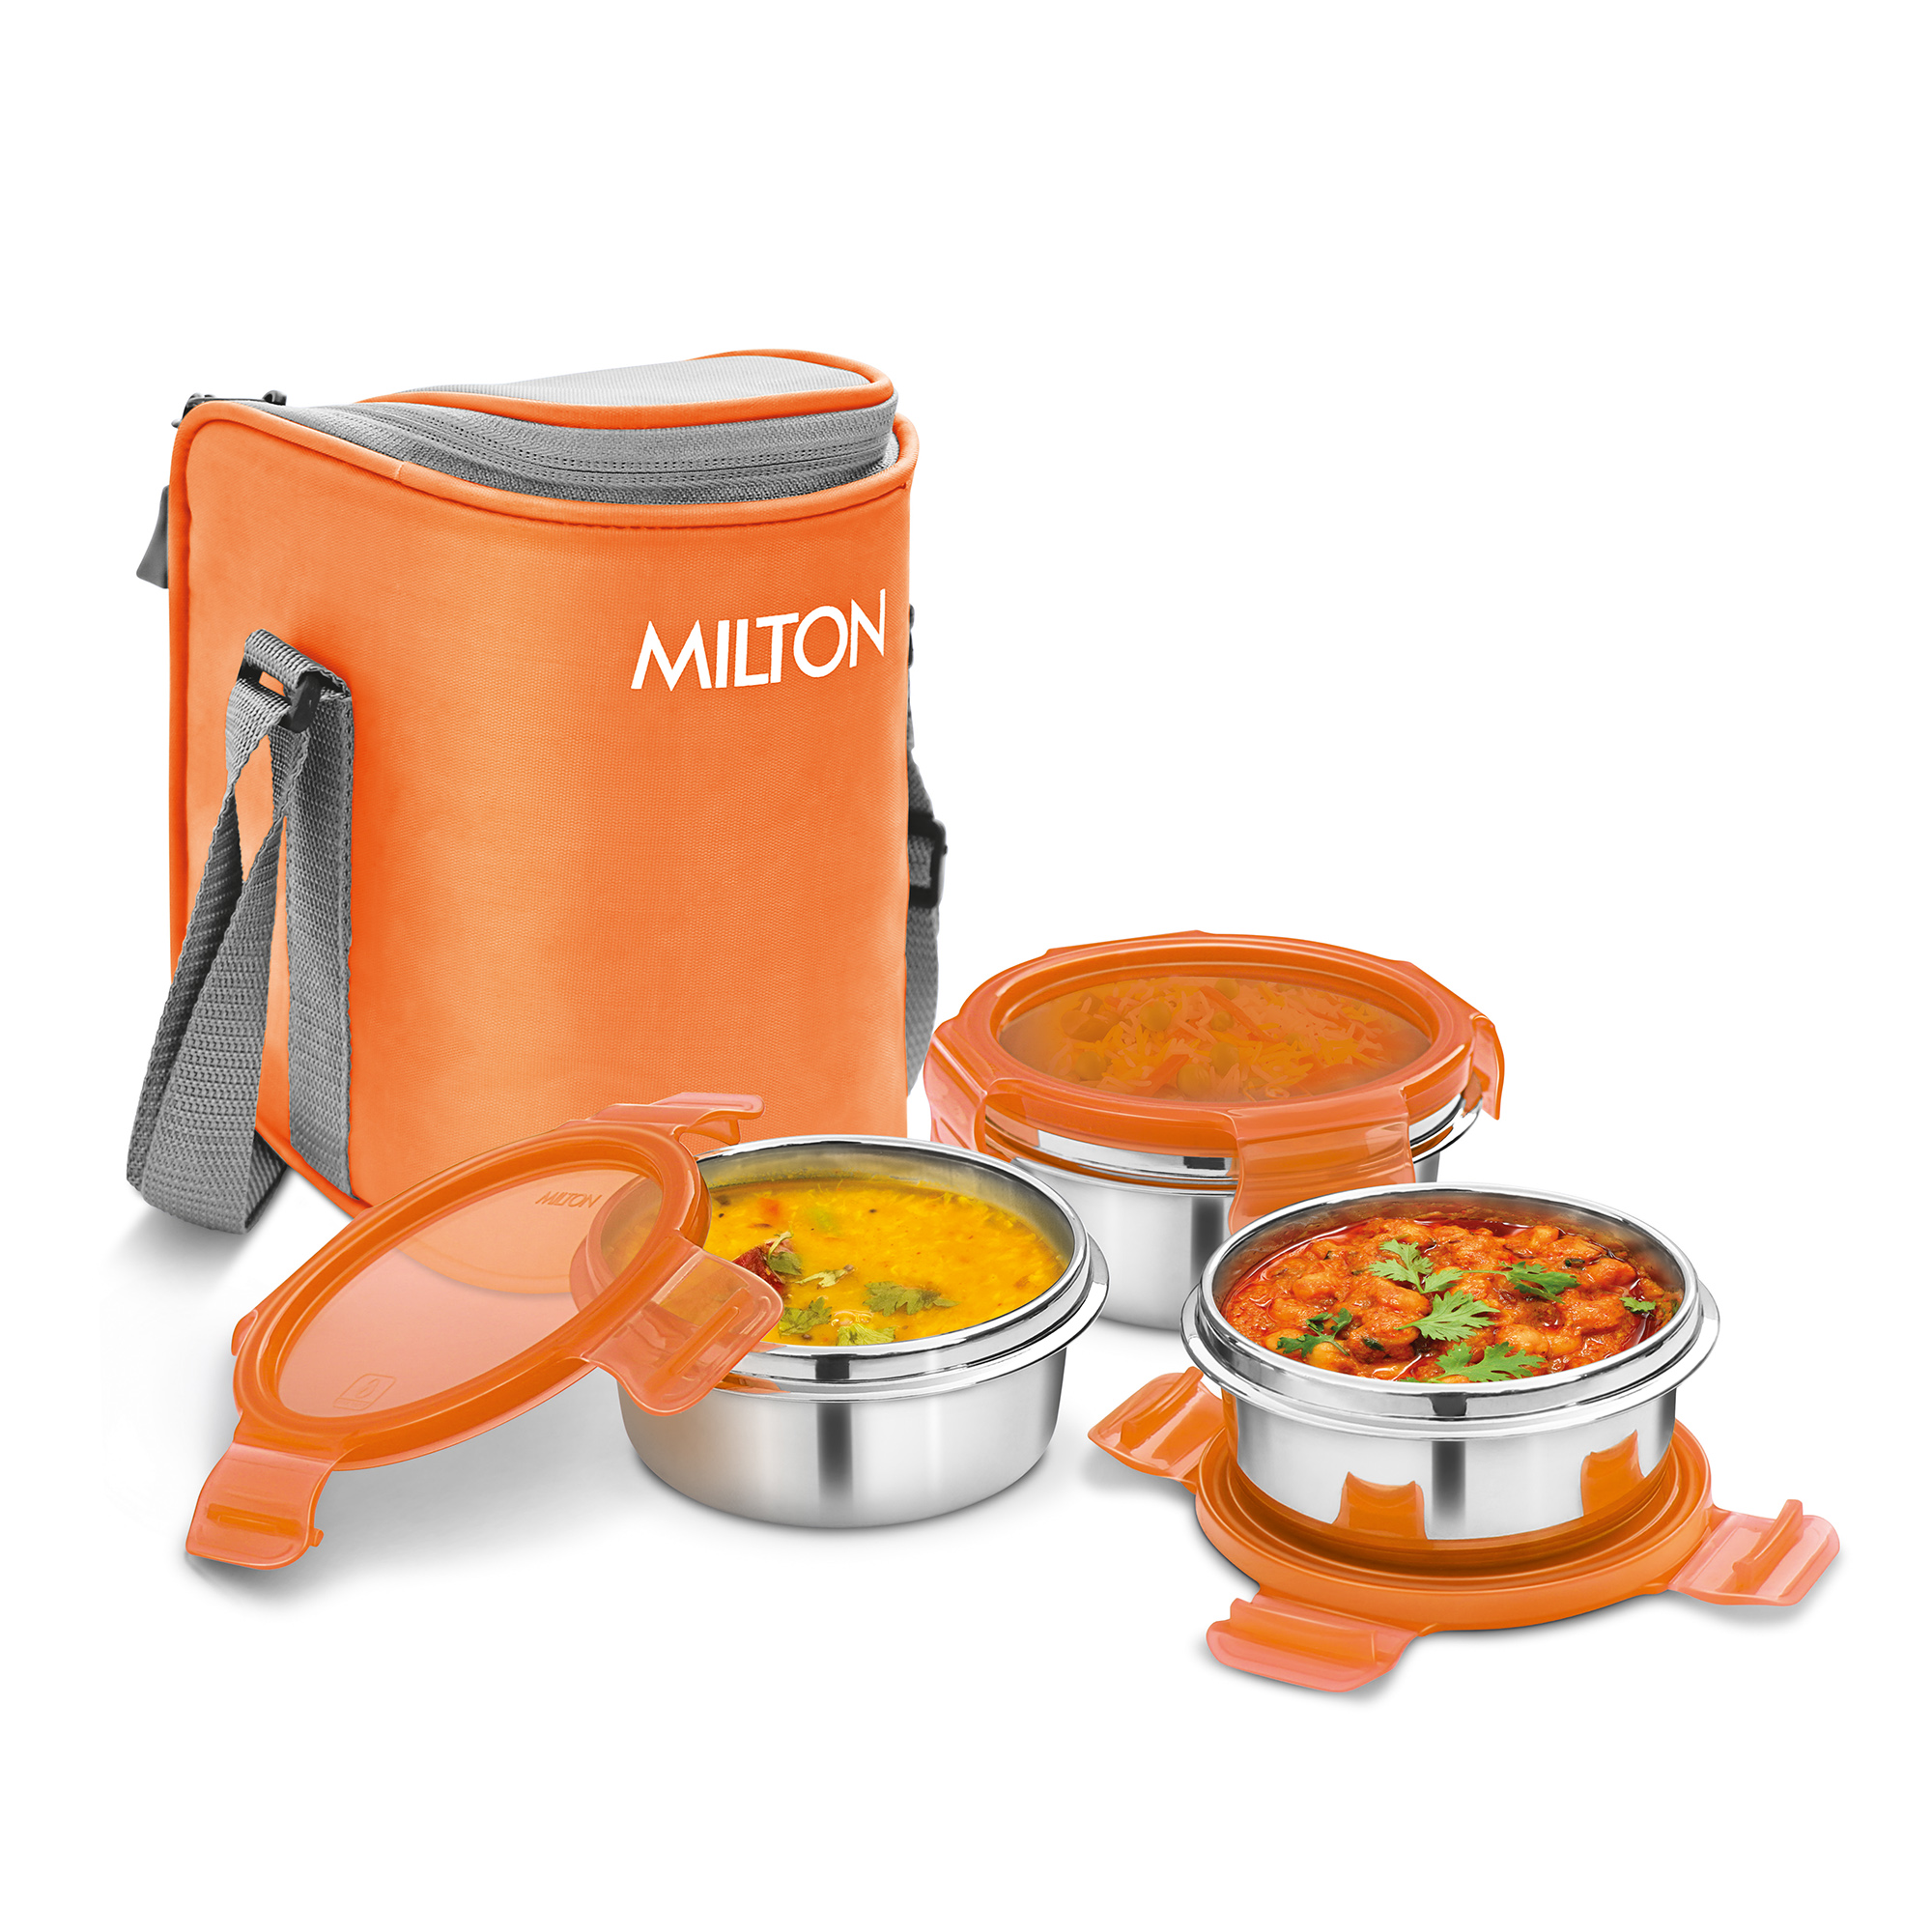 Milton Cube 3 Stainless Steel Tiffin Lunch Box, 300 ml each container, Orange